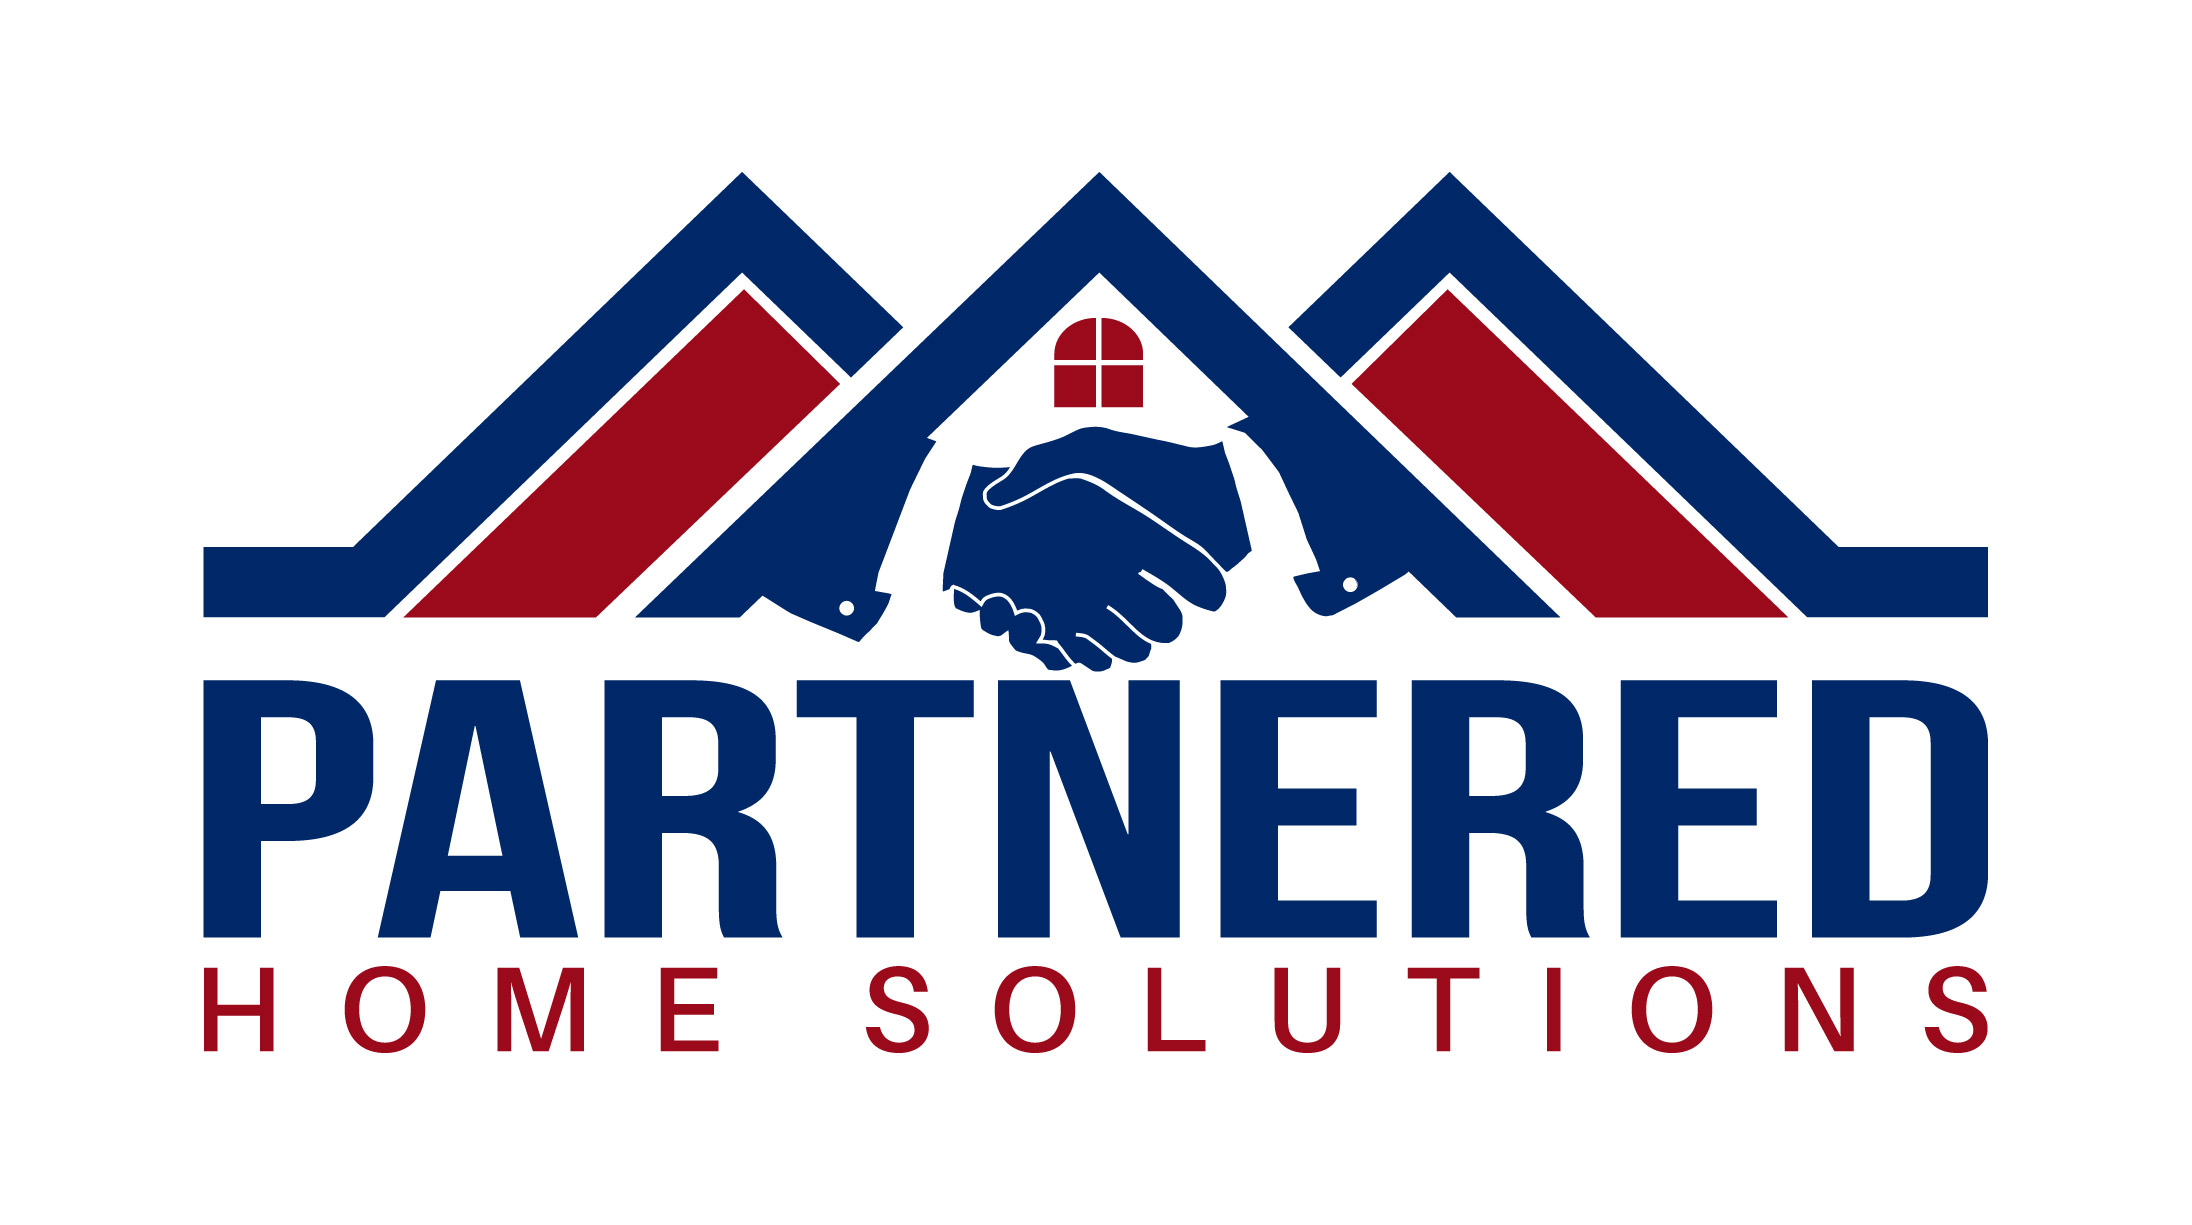 Partnered Home Solutions